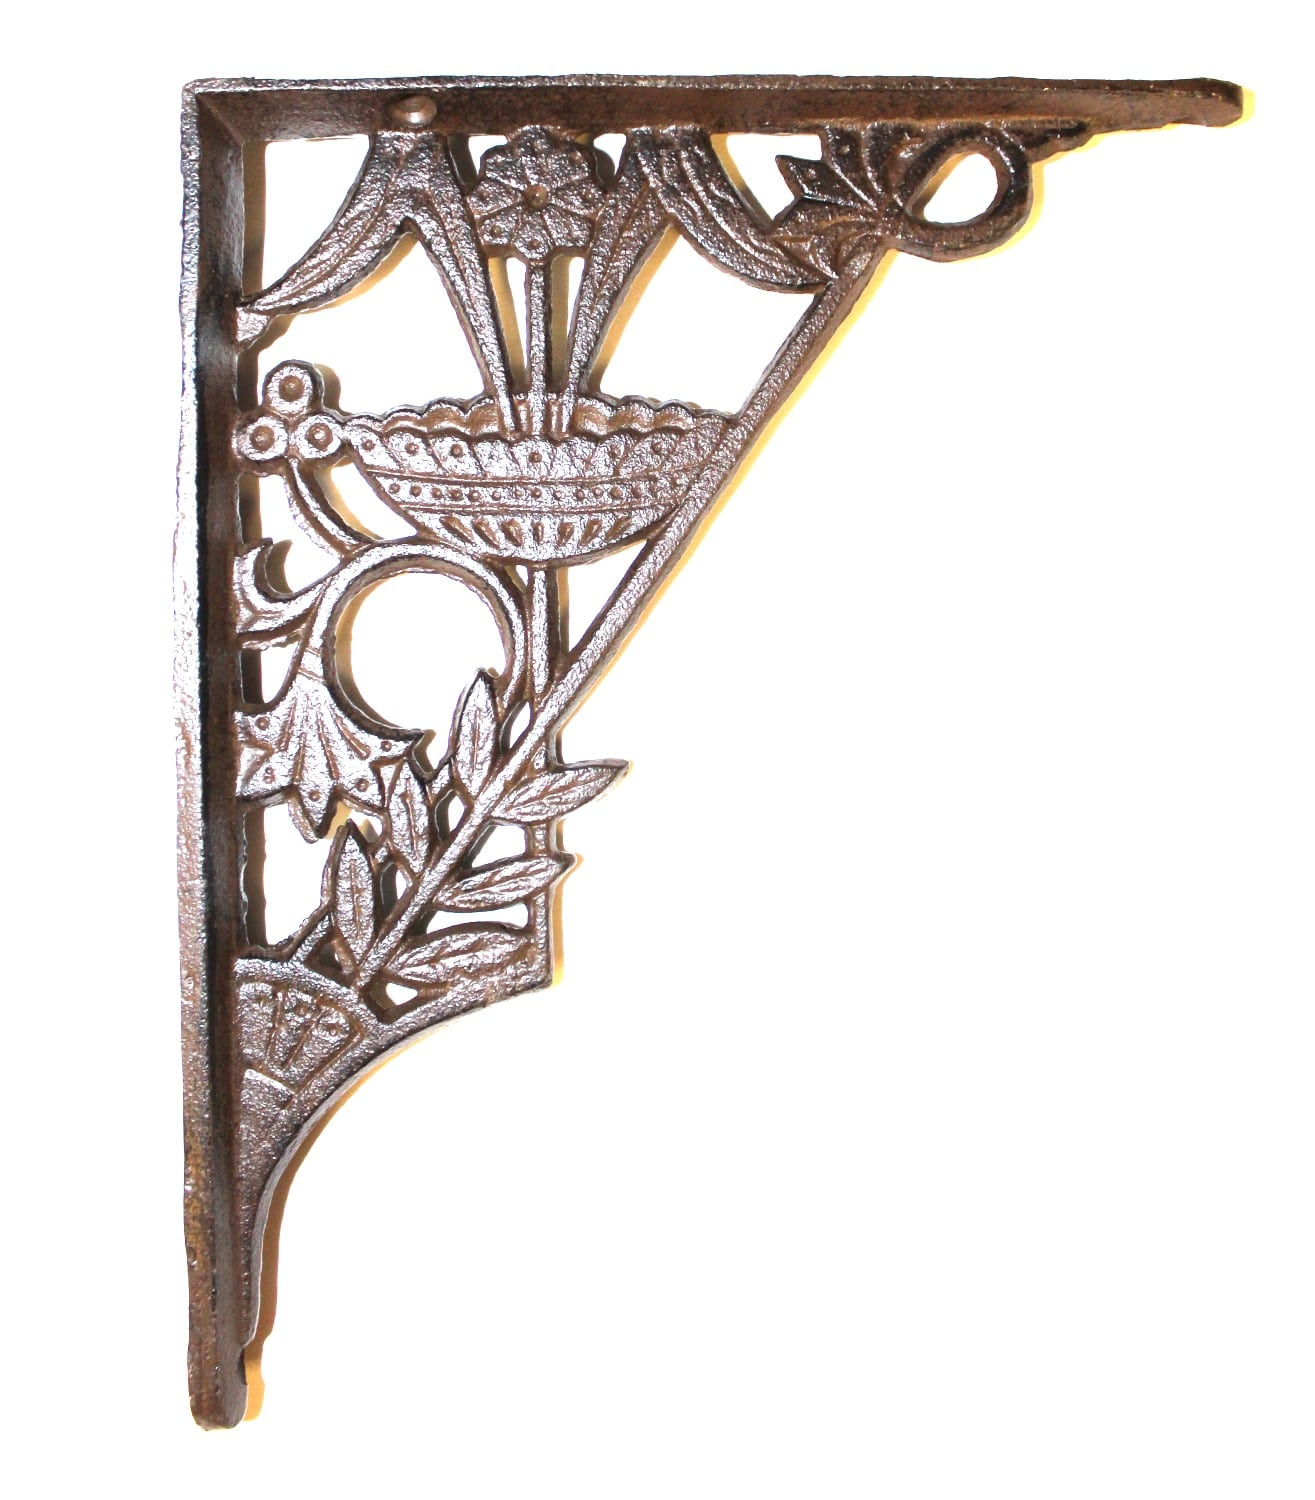 Floral And Leaf Cast Iron Shelf Bracket In Rust Painted Finish The Kings Bay